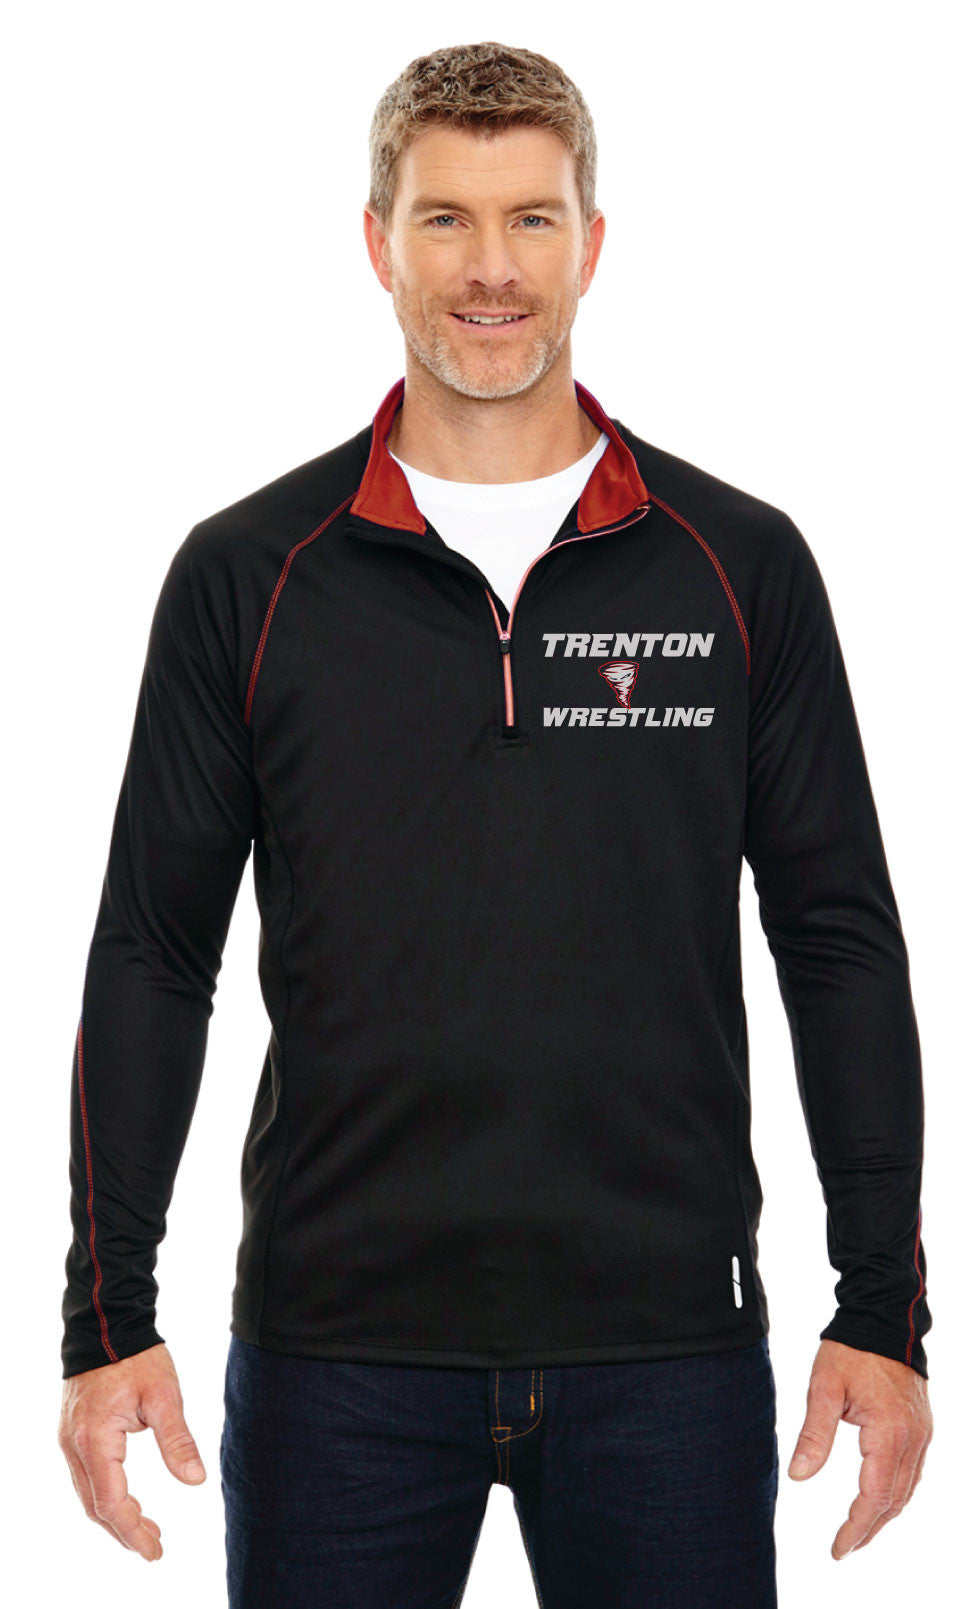 Trenton Wrestling Half-Zip Performance Jacket